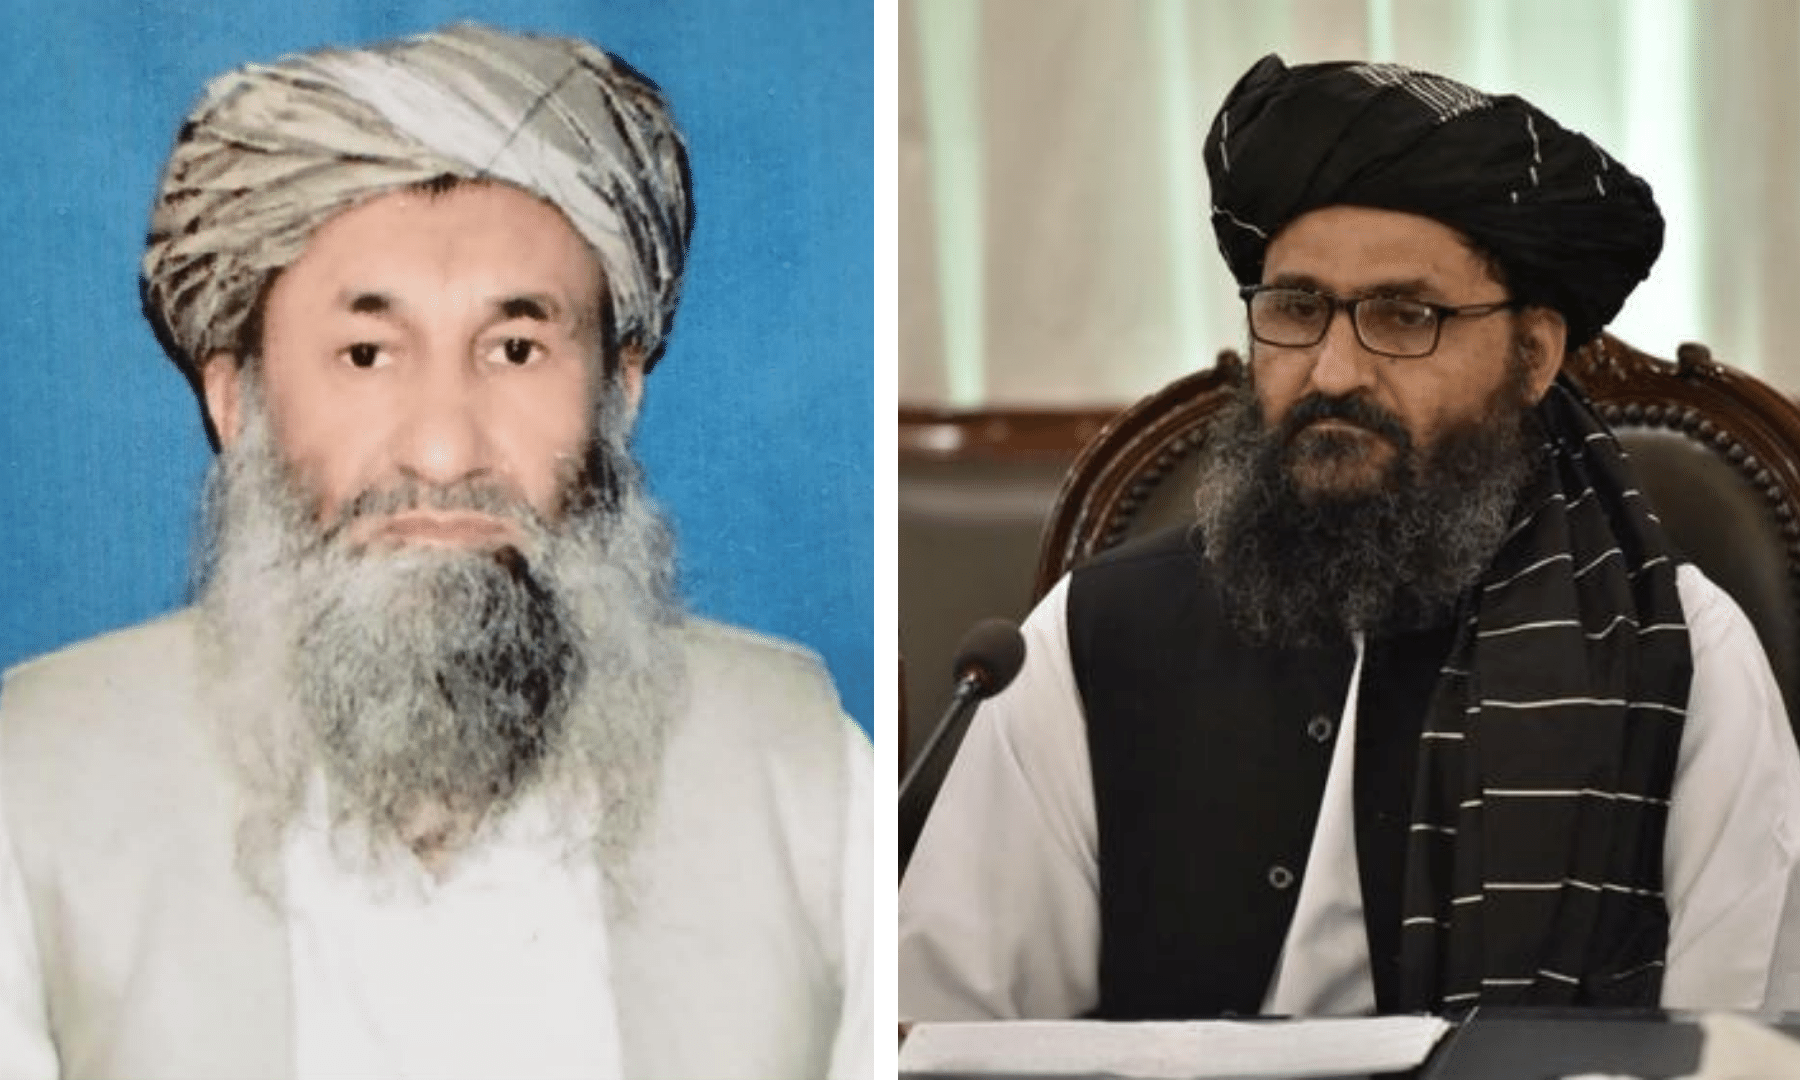 This combination photo shows the new Afghan government's acting Prime Minister Mohammad Hasan Akhund (L) and acting Deputy Prime Minister Abdul Ghani Baradar (R). — Afghanistan Information Ministry/ Reuters